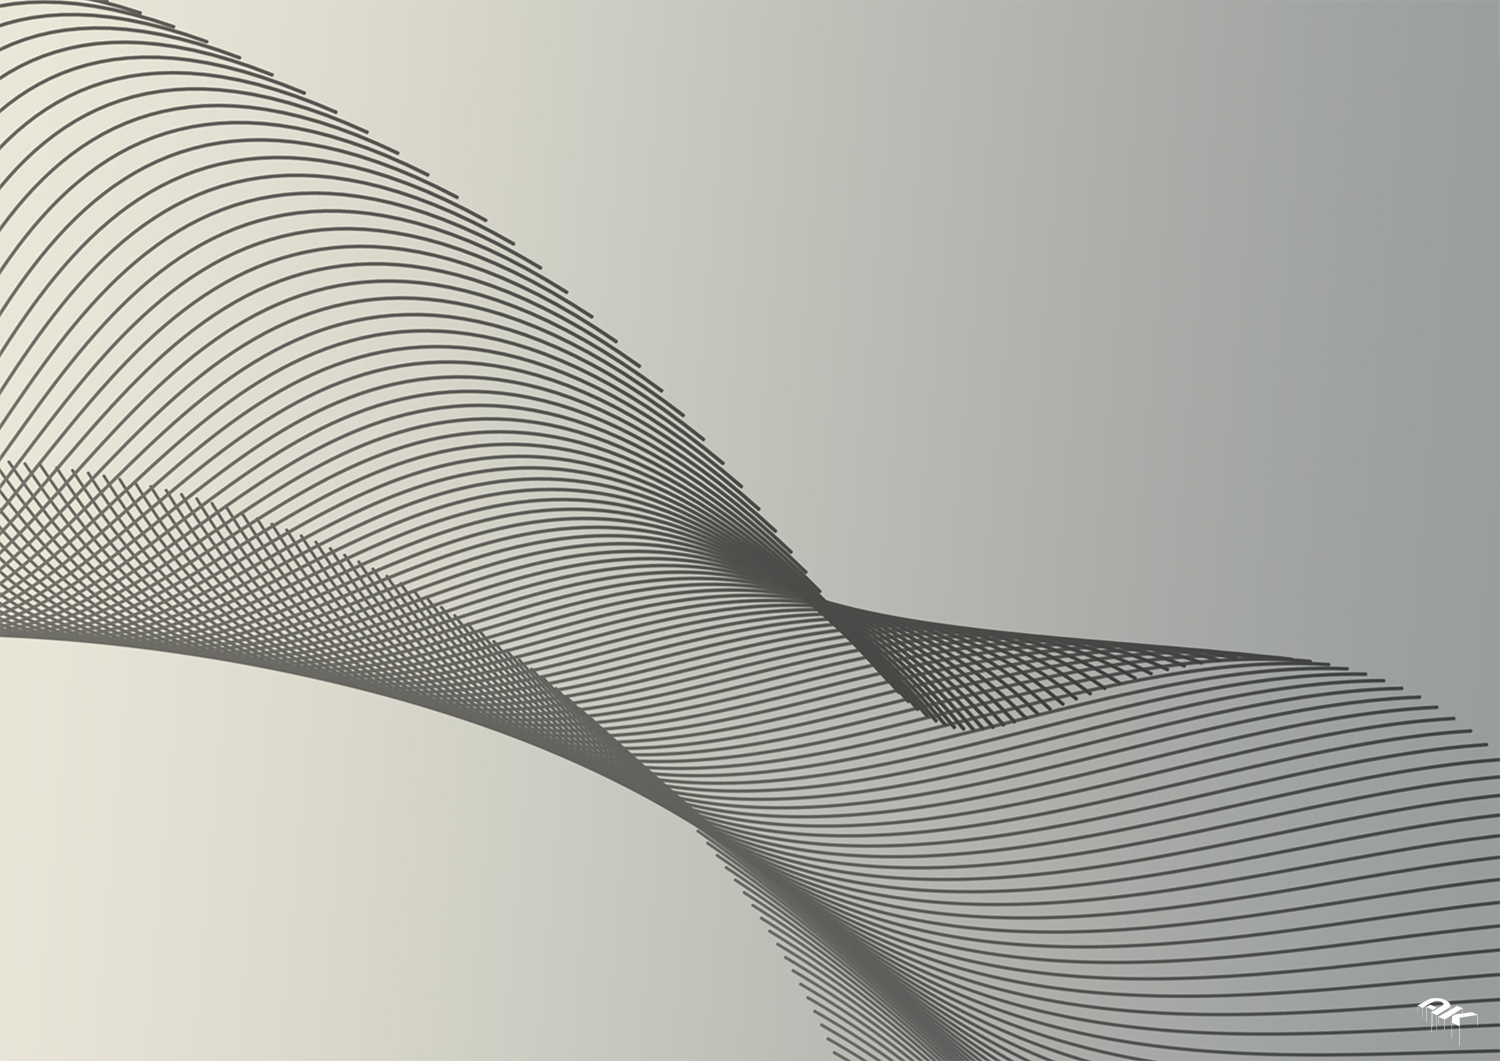 wireframes-in-motion-7-copyright-andrew-knutt